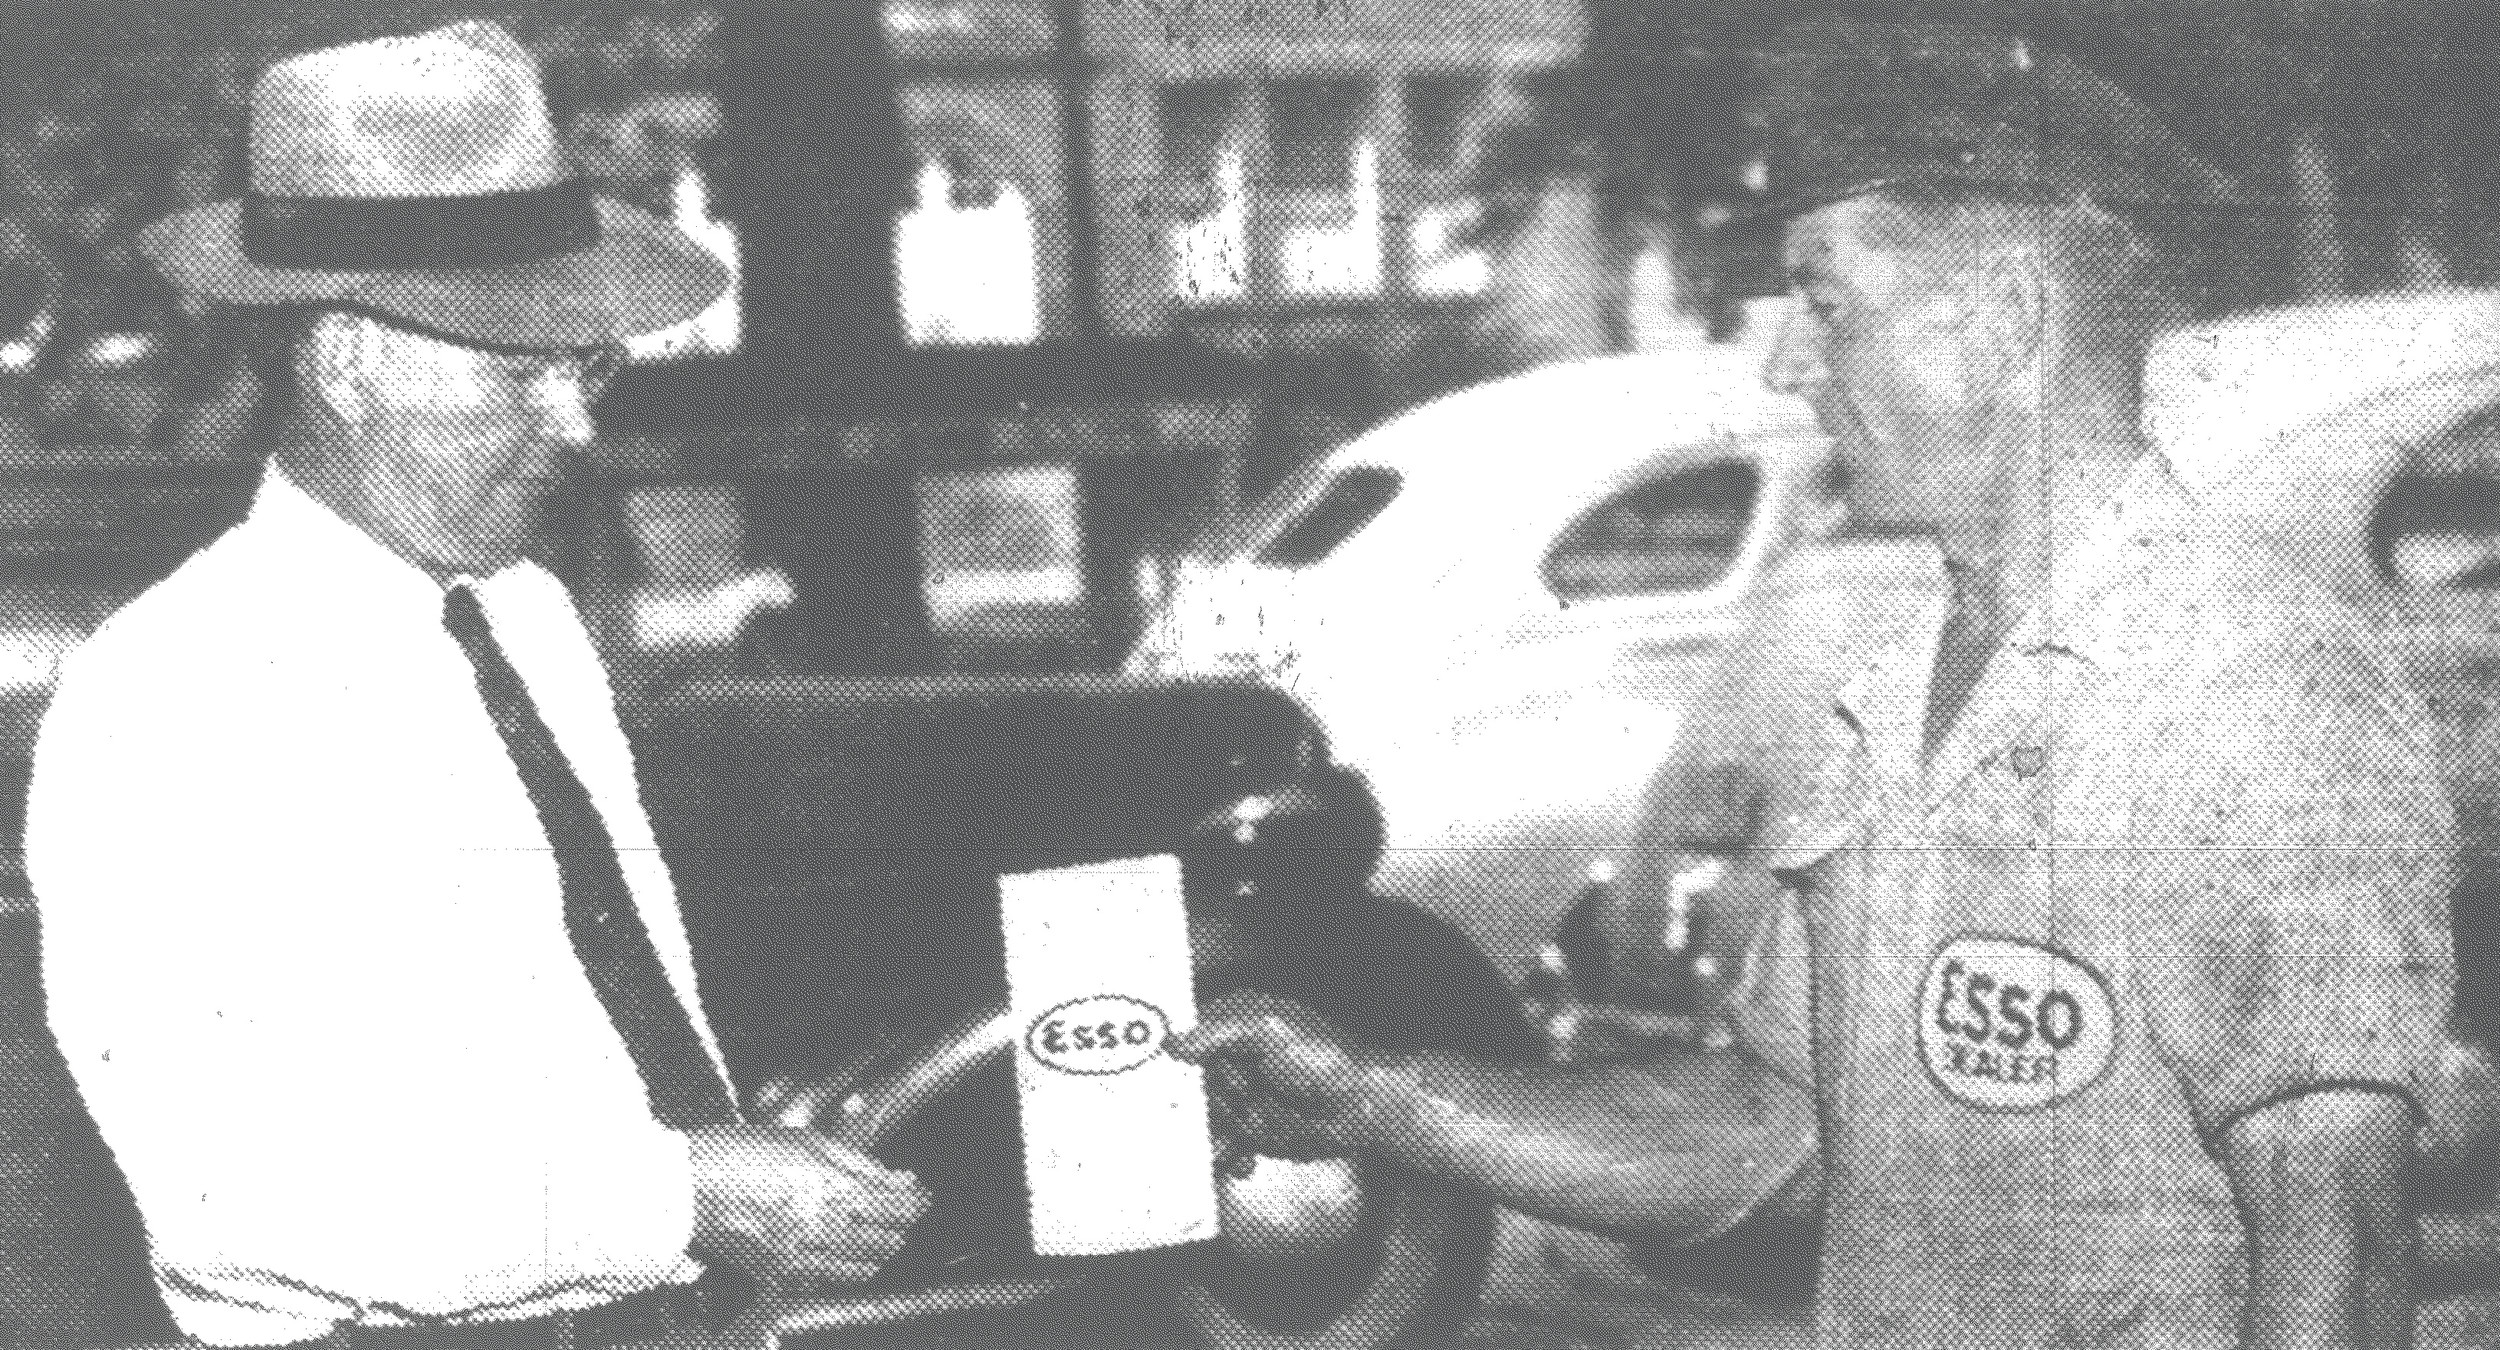 Mayor F.B. Creech receives an Esso Victory Home Canning Guide and Time Table from Phillip DuBose at the Esso service station, corner of Liberty and Washington streets, in 1943. Esso Marketers printed and distributed these time guides to aid the war effort.